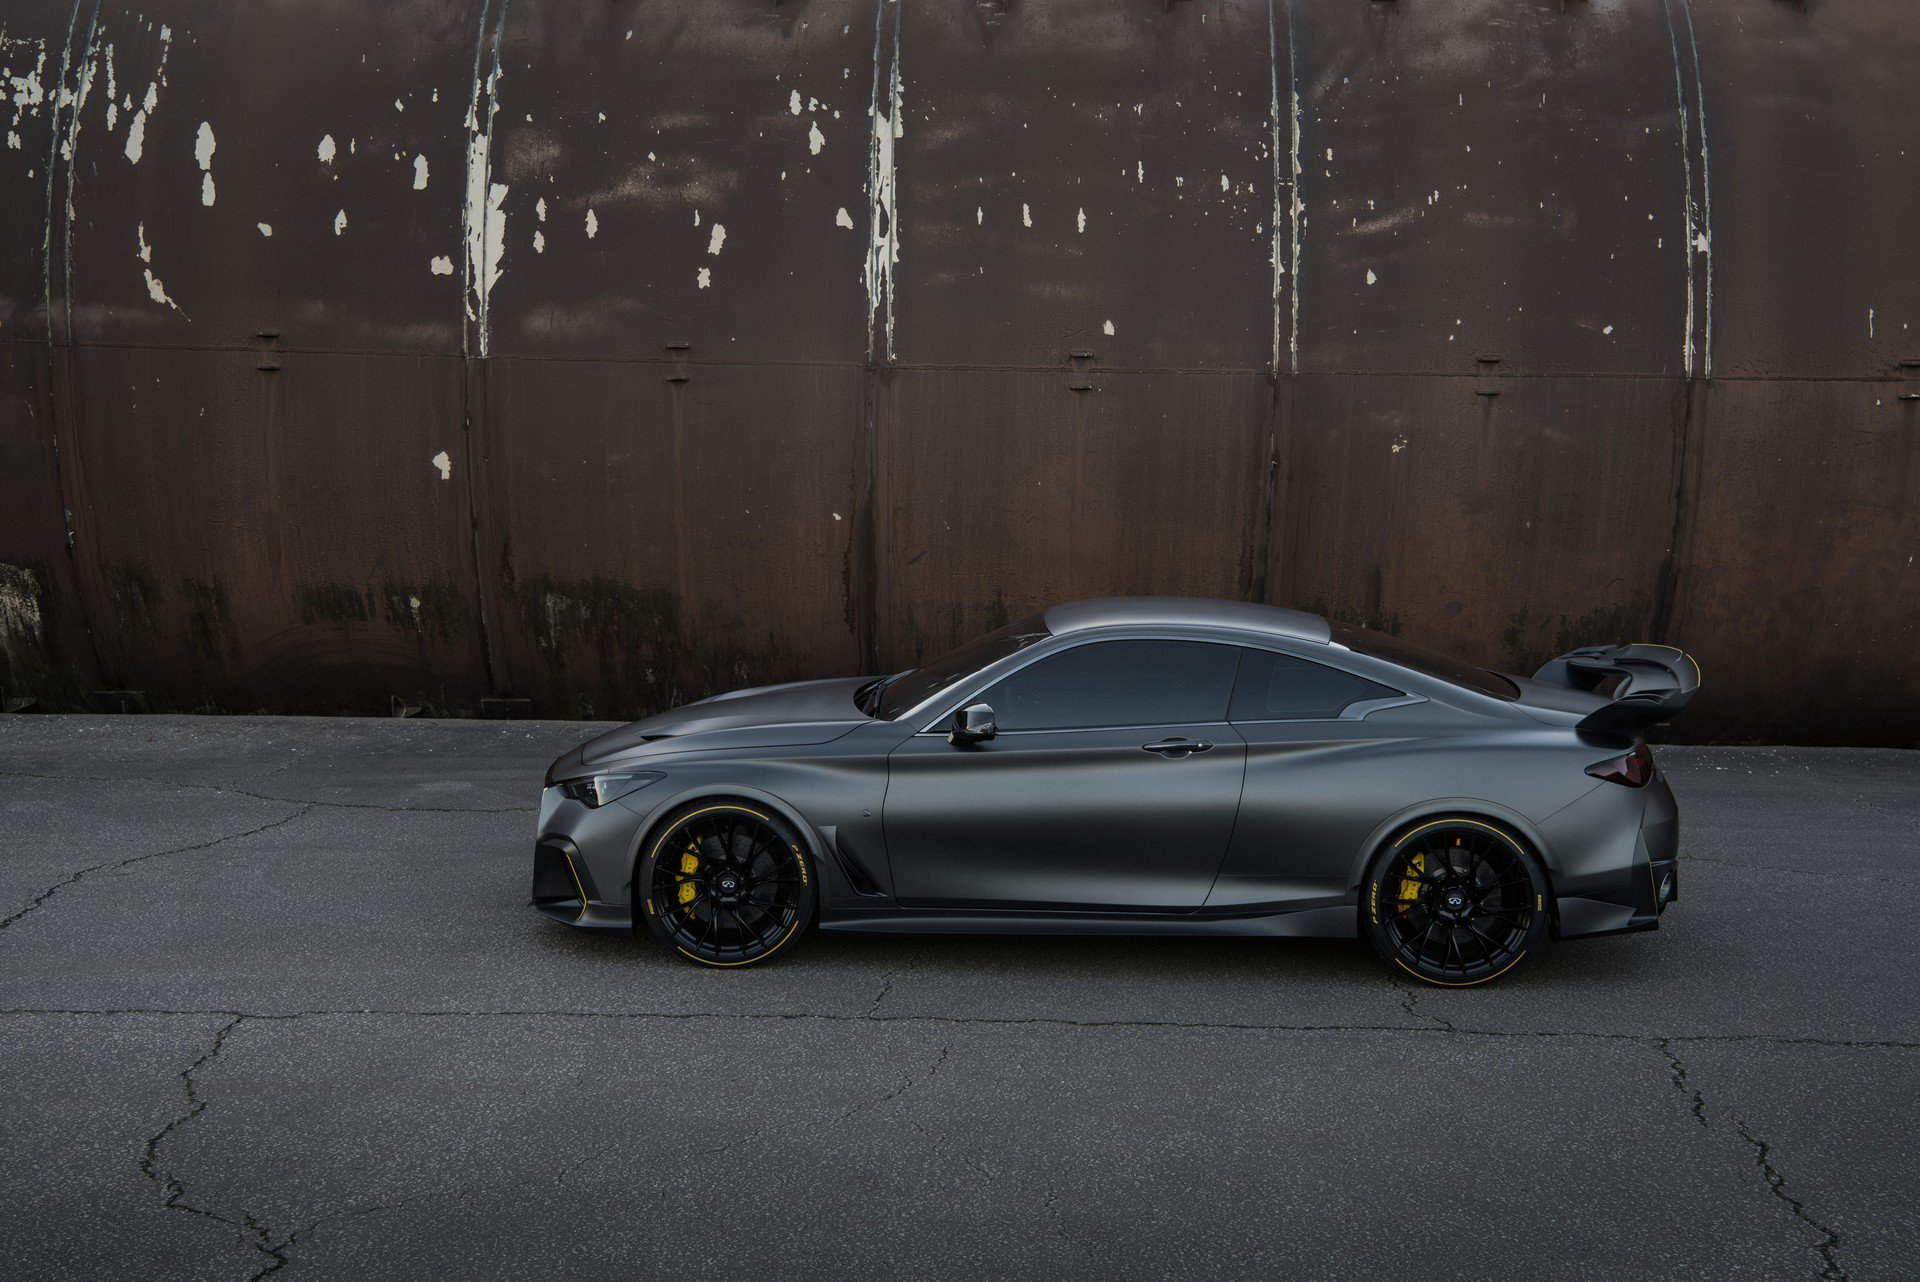 Infiniti Project Black S Prototype (19)